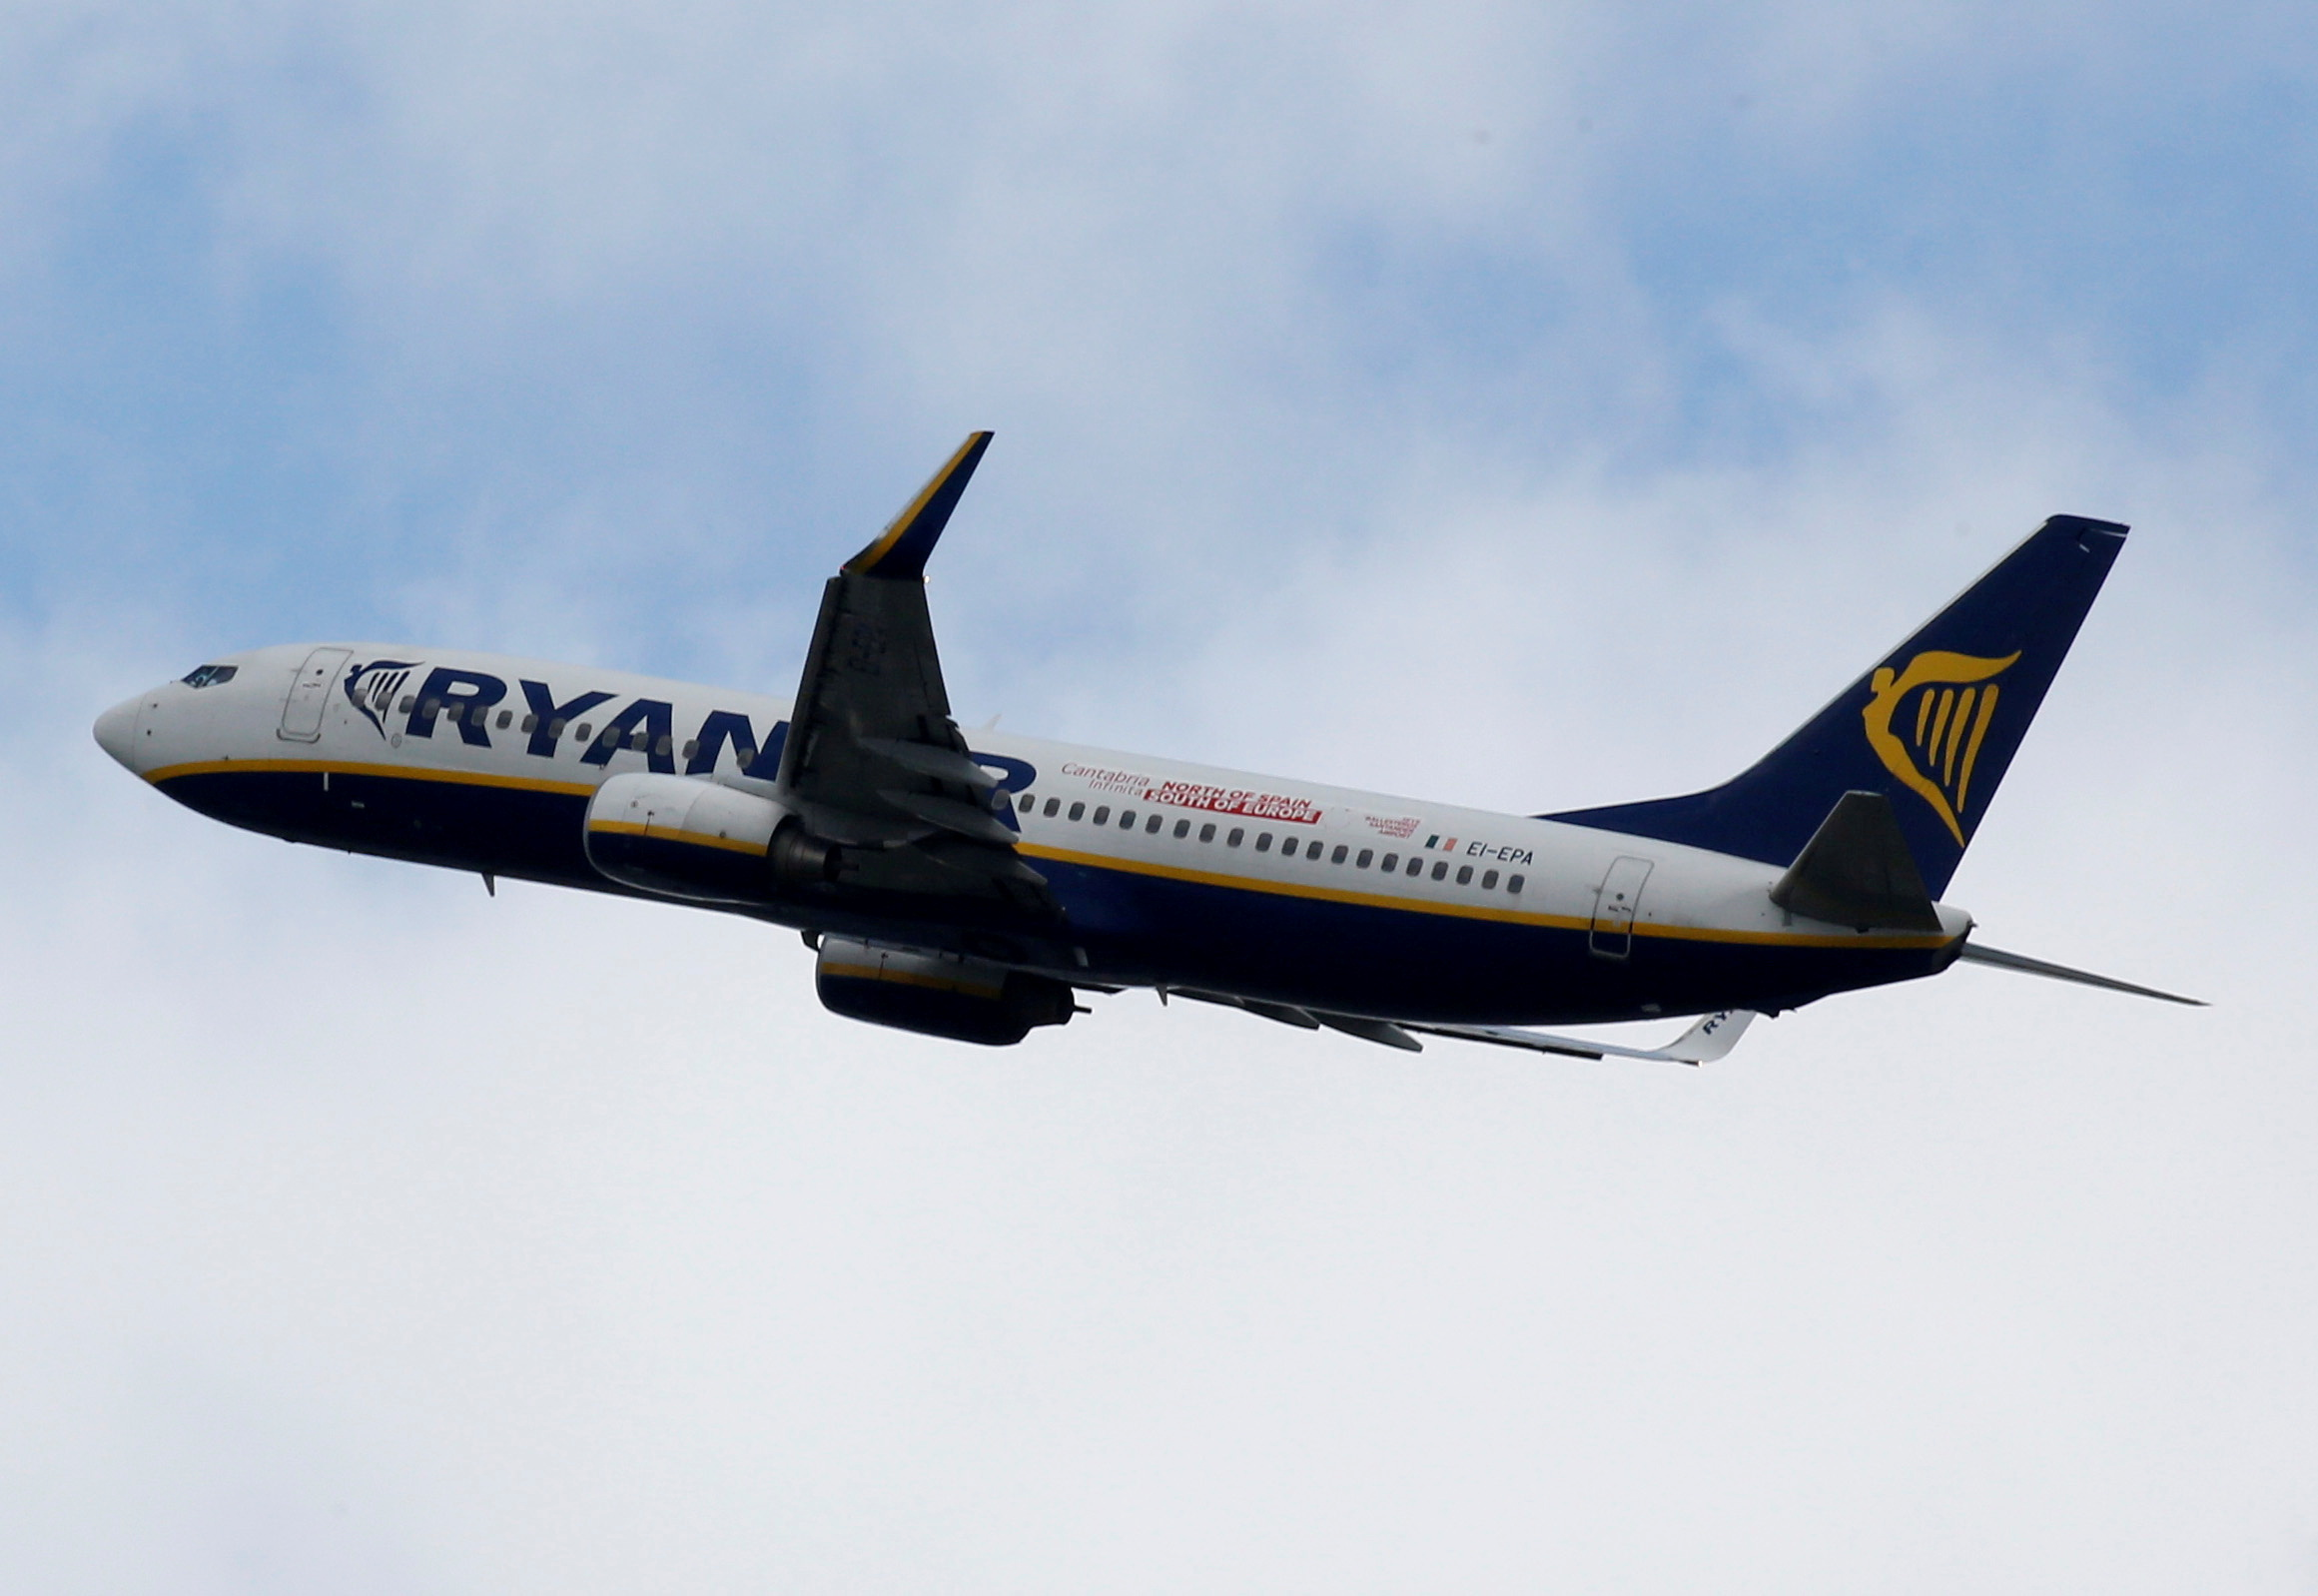 A Ryanair commercial passenger jet takes off in Blagnac near Toulouse, France, May 29, 2019. REUTERS/Regis Duvignau